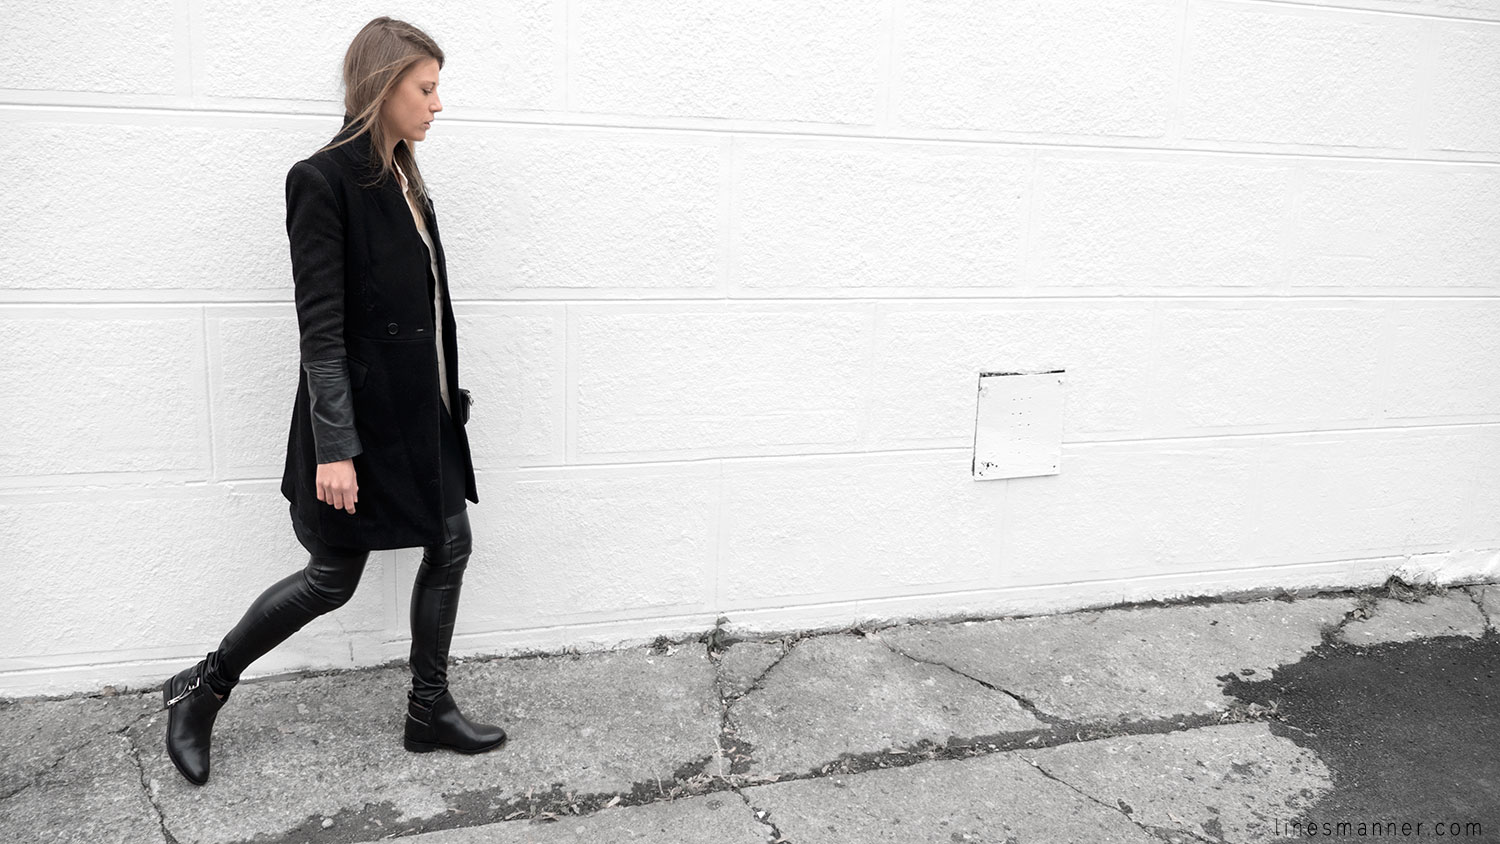 Lines-Manner-Remind-2015-Minimal-Essential-Outfit-Inspiration-Blog-Timeless-Year-Seasons-Details-Travel-Fashion-Versatile-Clean-Sleek-Quality-6